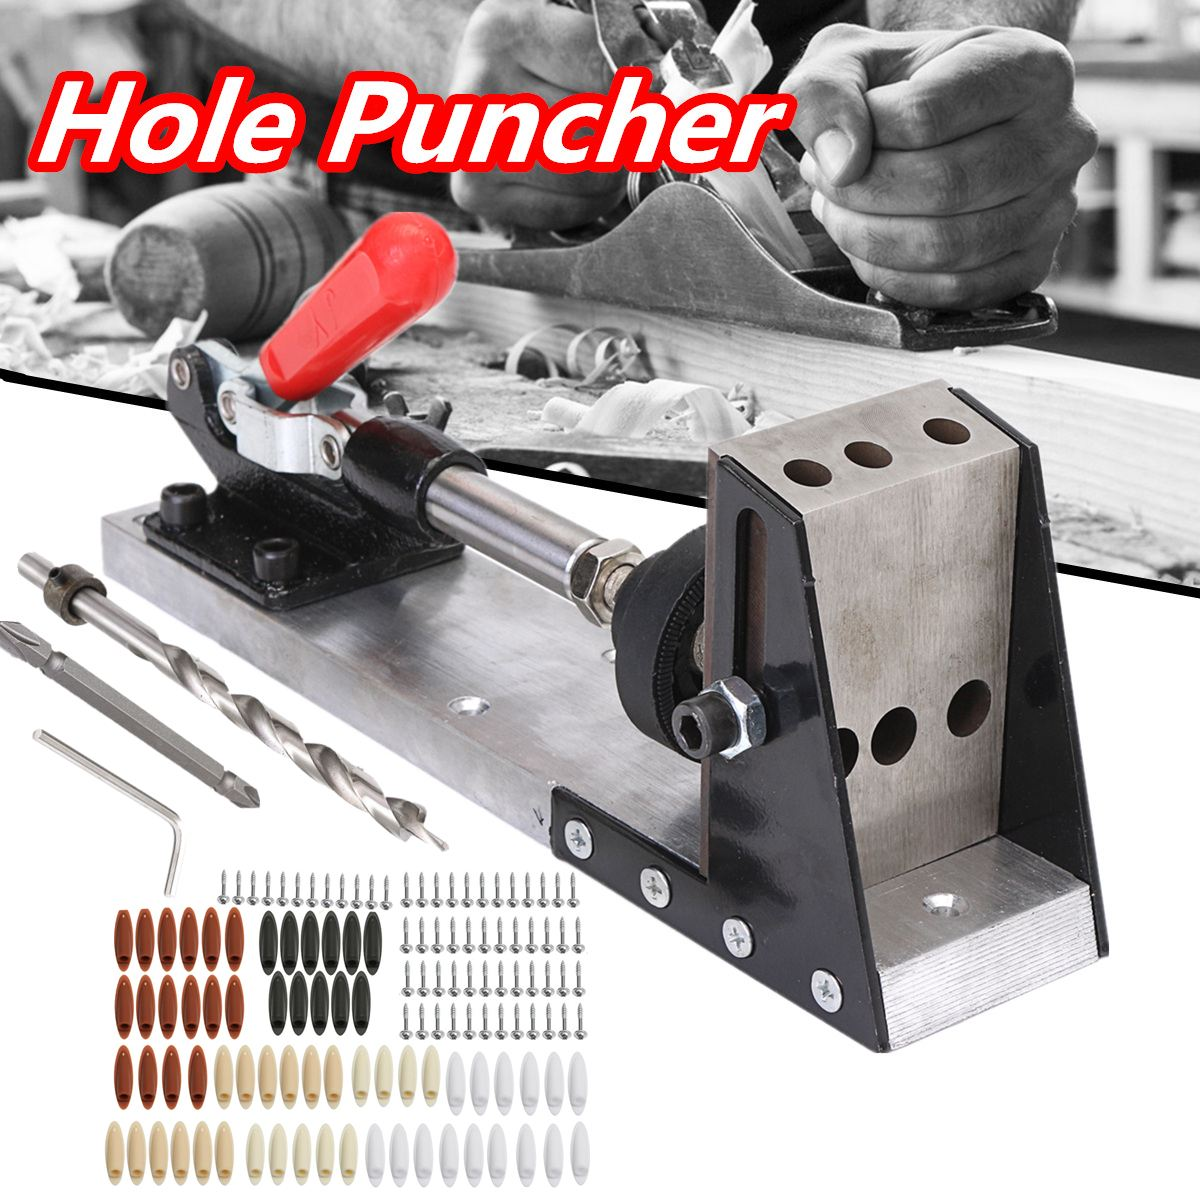 High Quality Woodworking Tool Pocket Hole Puncher Jig Drill Guide Master Kit Carpenter Joinery System Woodworking